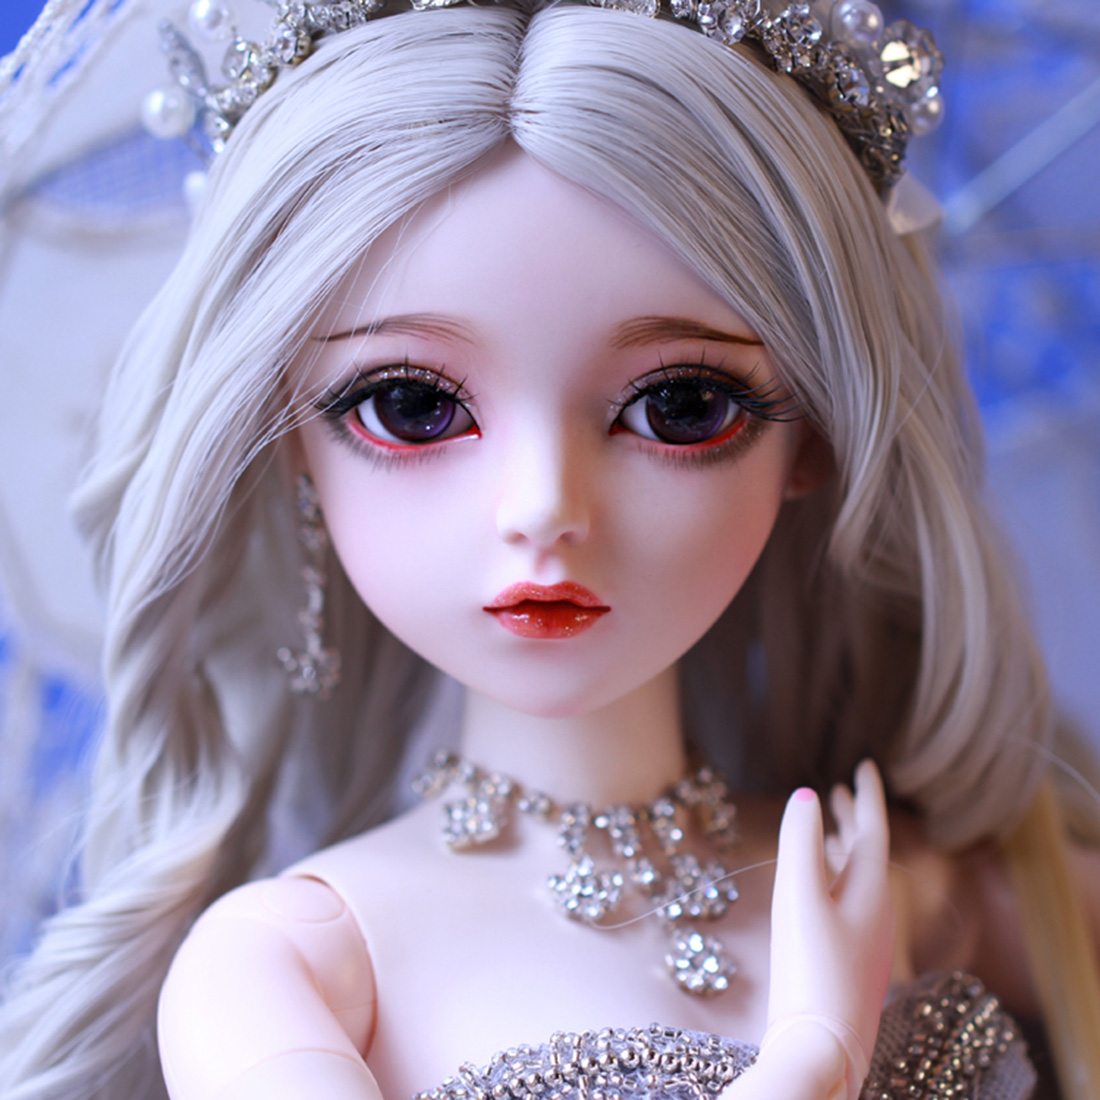 60cm 1/3 BJD Dolls Mechanical Joints Wedding Dress Doll Set-Cinderella (Included Eyes + Handmade Makeup + Full Clothes As Shown)